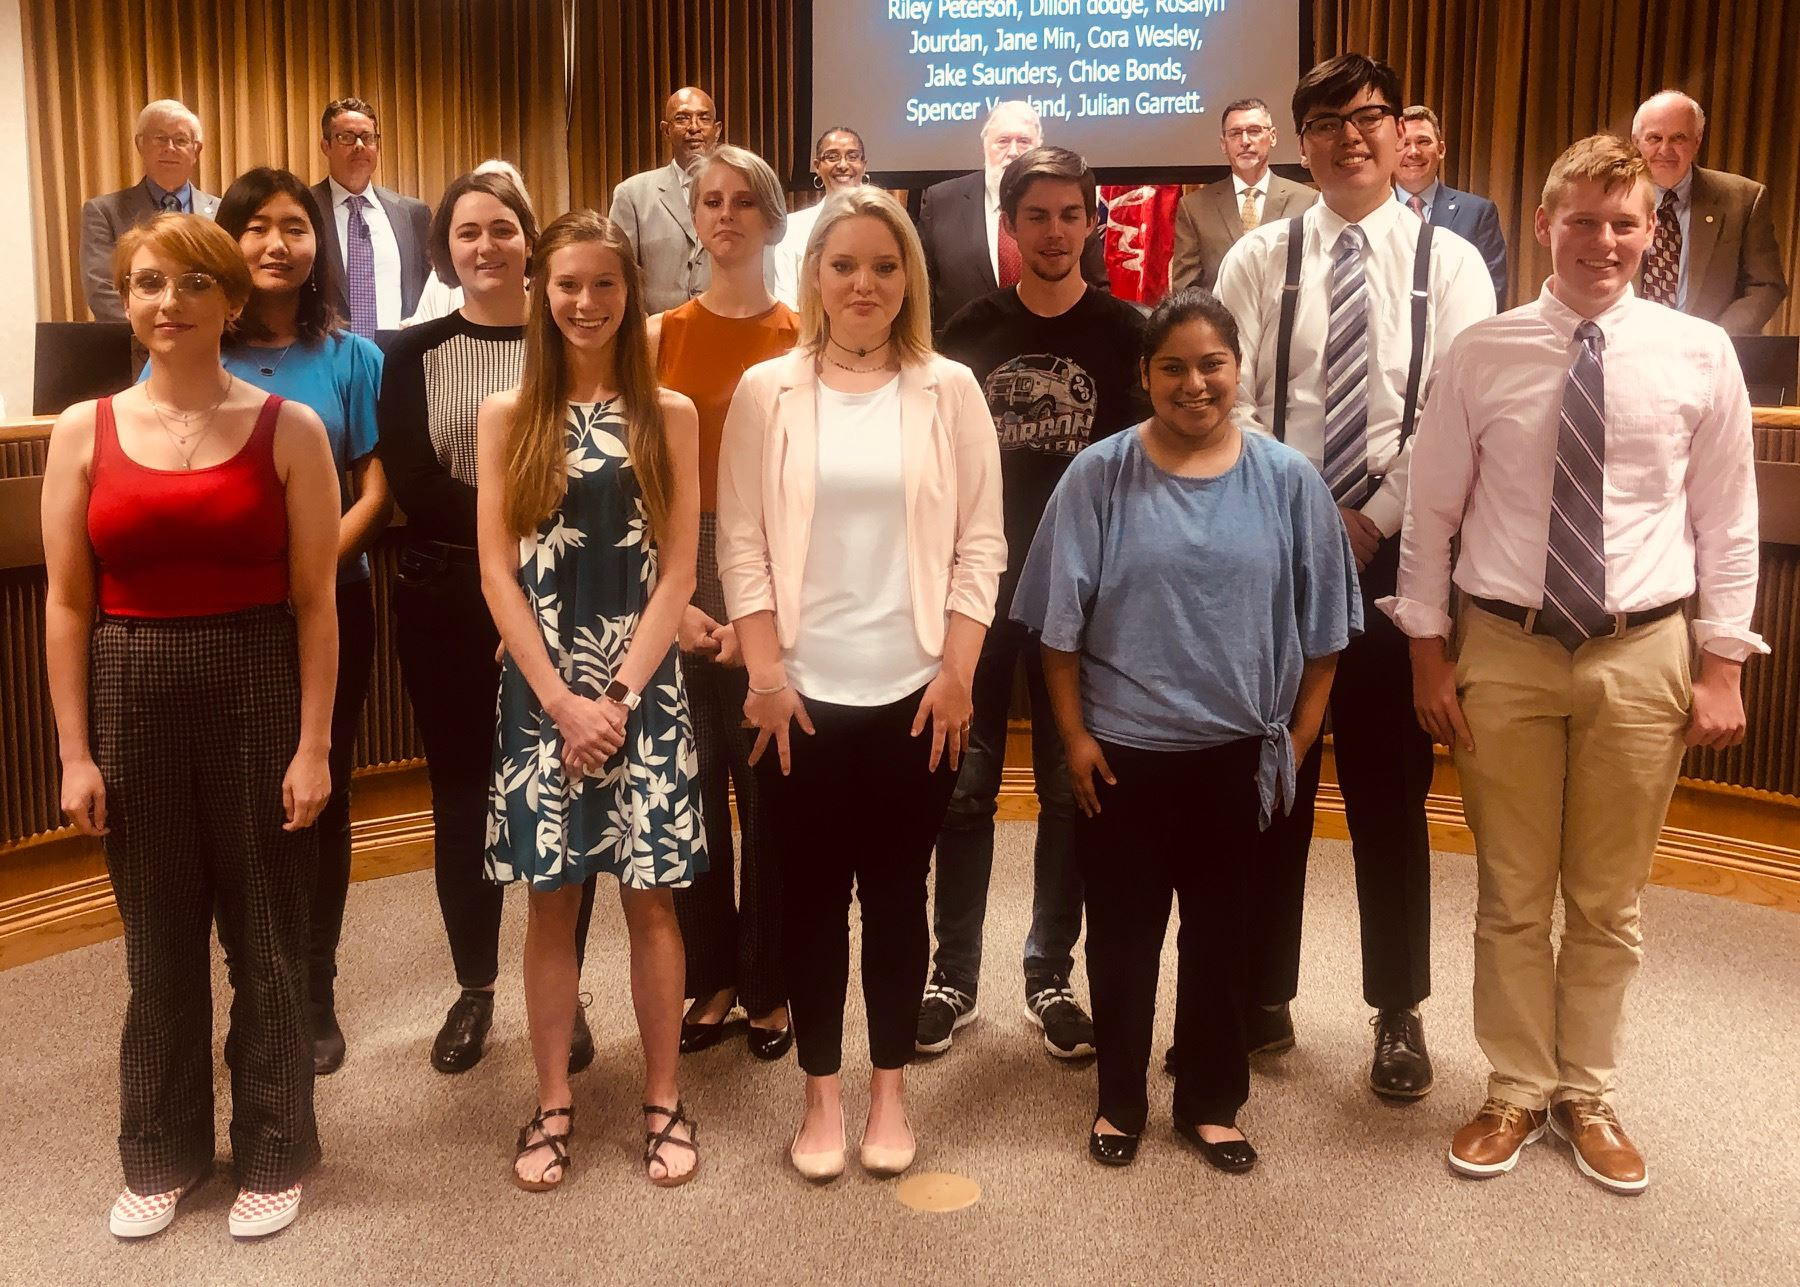 Joplin Youth Council Members 2019-20: Front row, from left: Casey Bonds, Riley Peterson, Kambrea Man